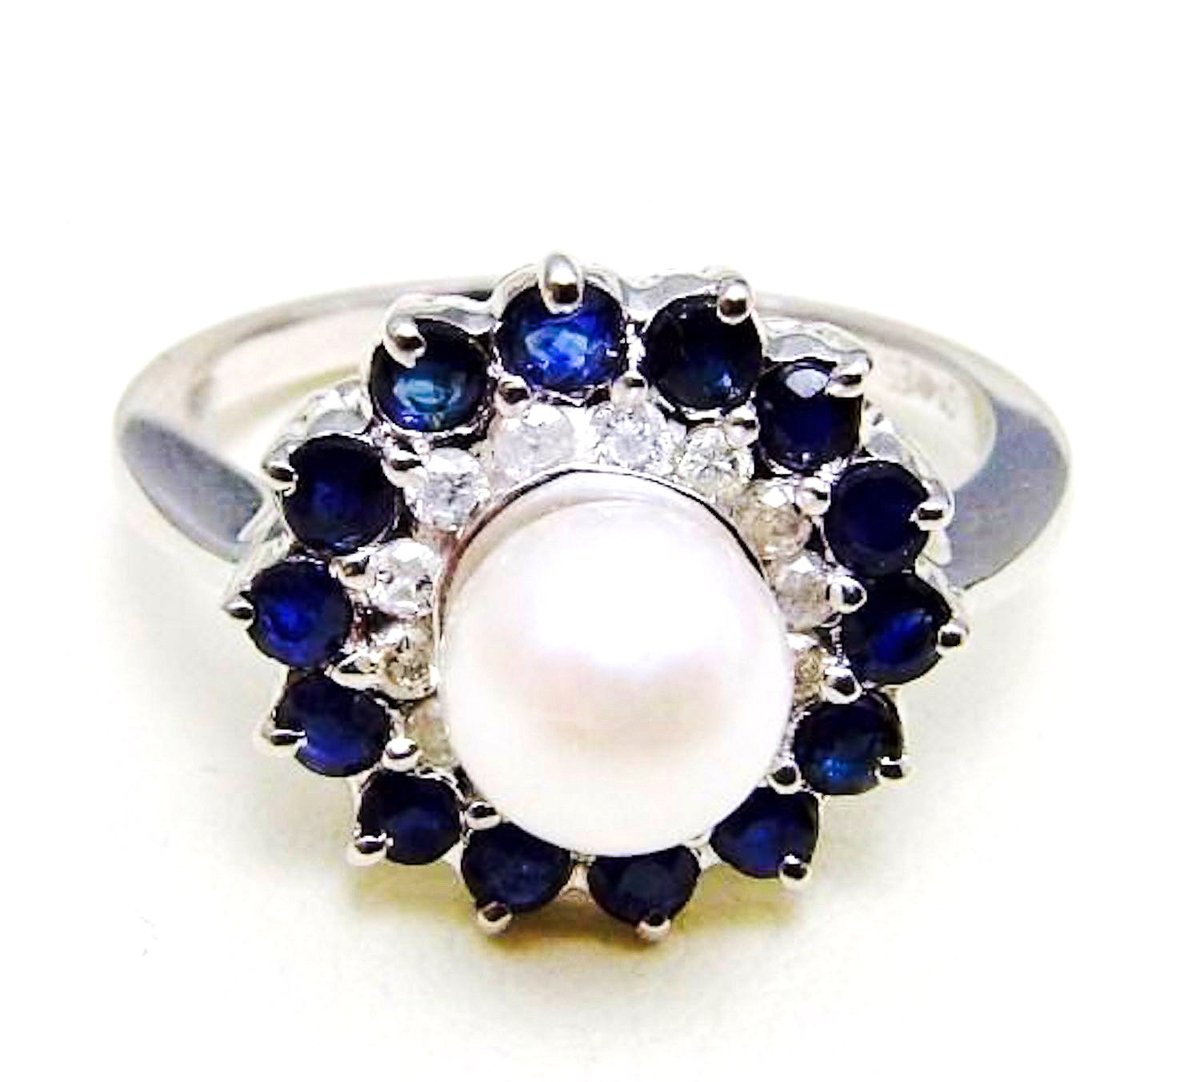 Excited to share the latest addition to my #etsy shop: Best Ring Stunning 18K White Gold 2 cts. Diamond & Sapphires and Japanese Akoya Saltwater White Round Cultured Pearl Handmade Ring Size 4-10  #pearl #white #wedding #round #floral #yes #no #b